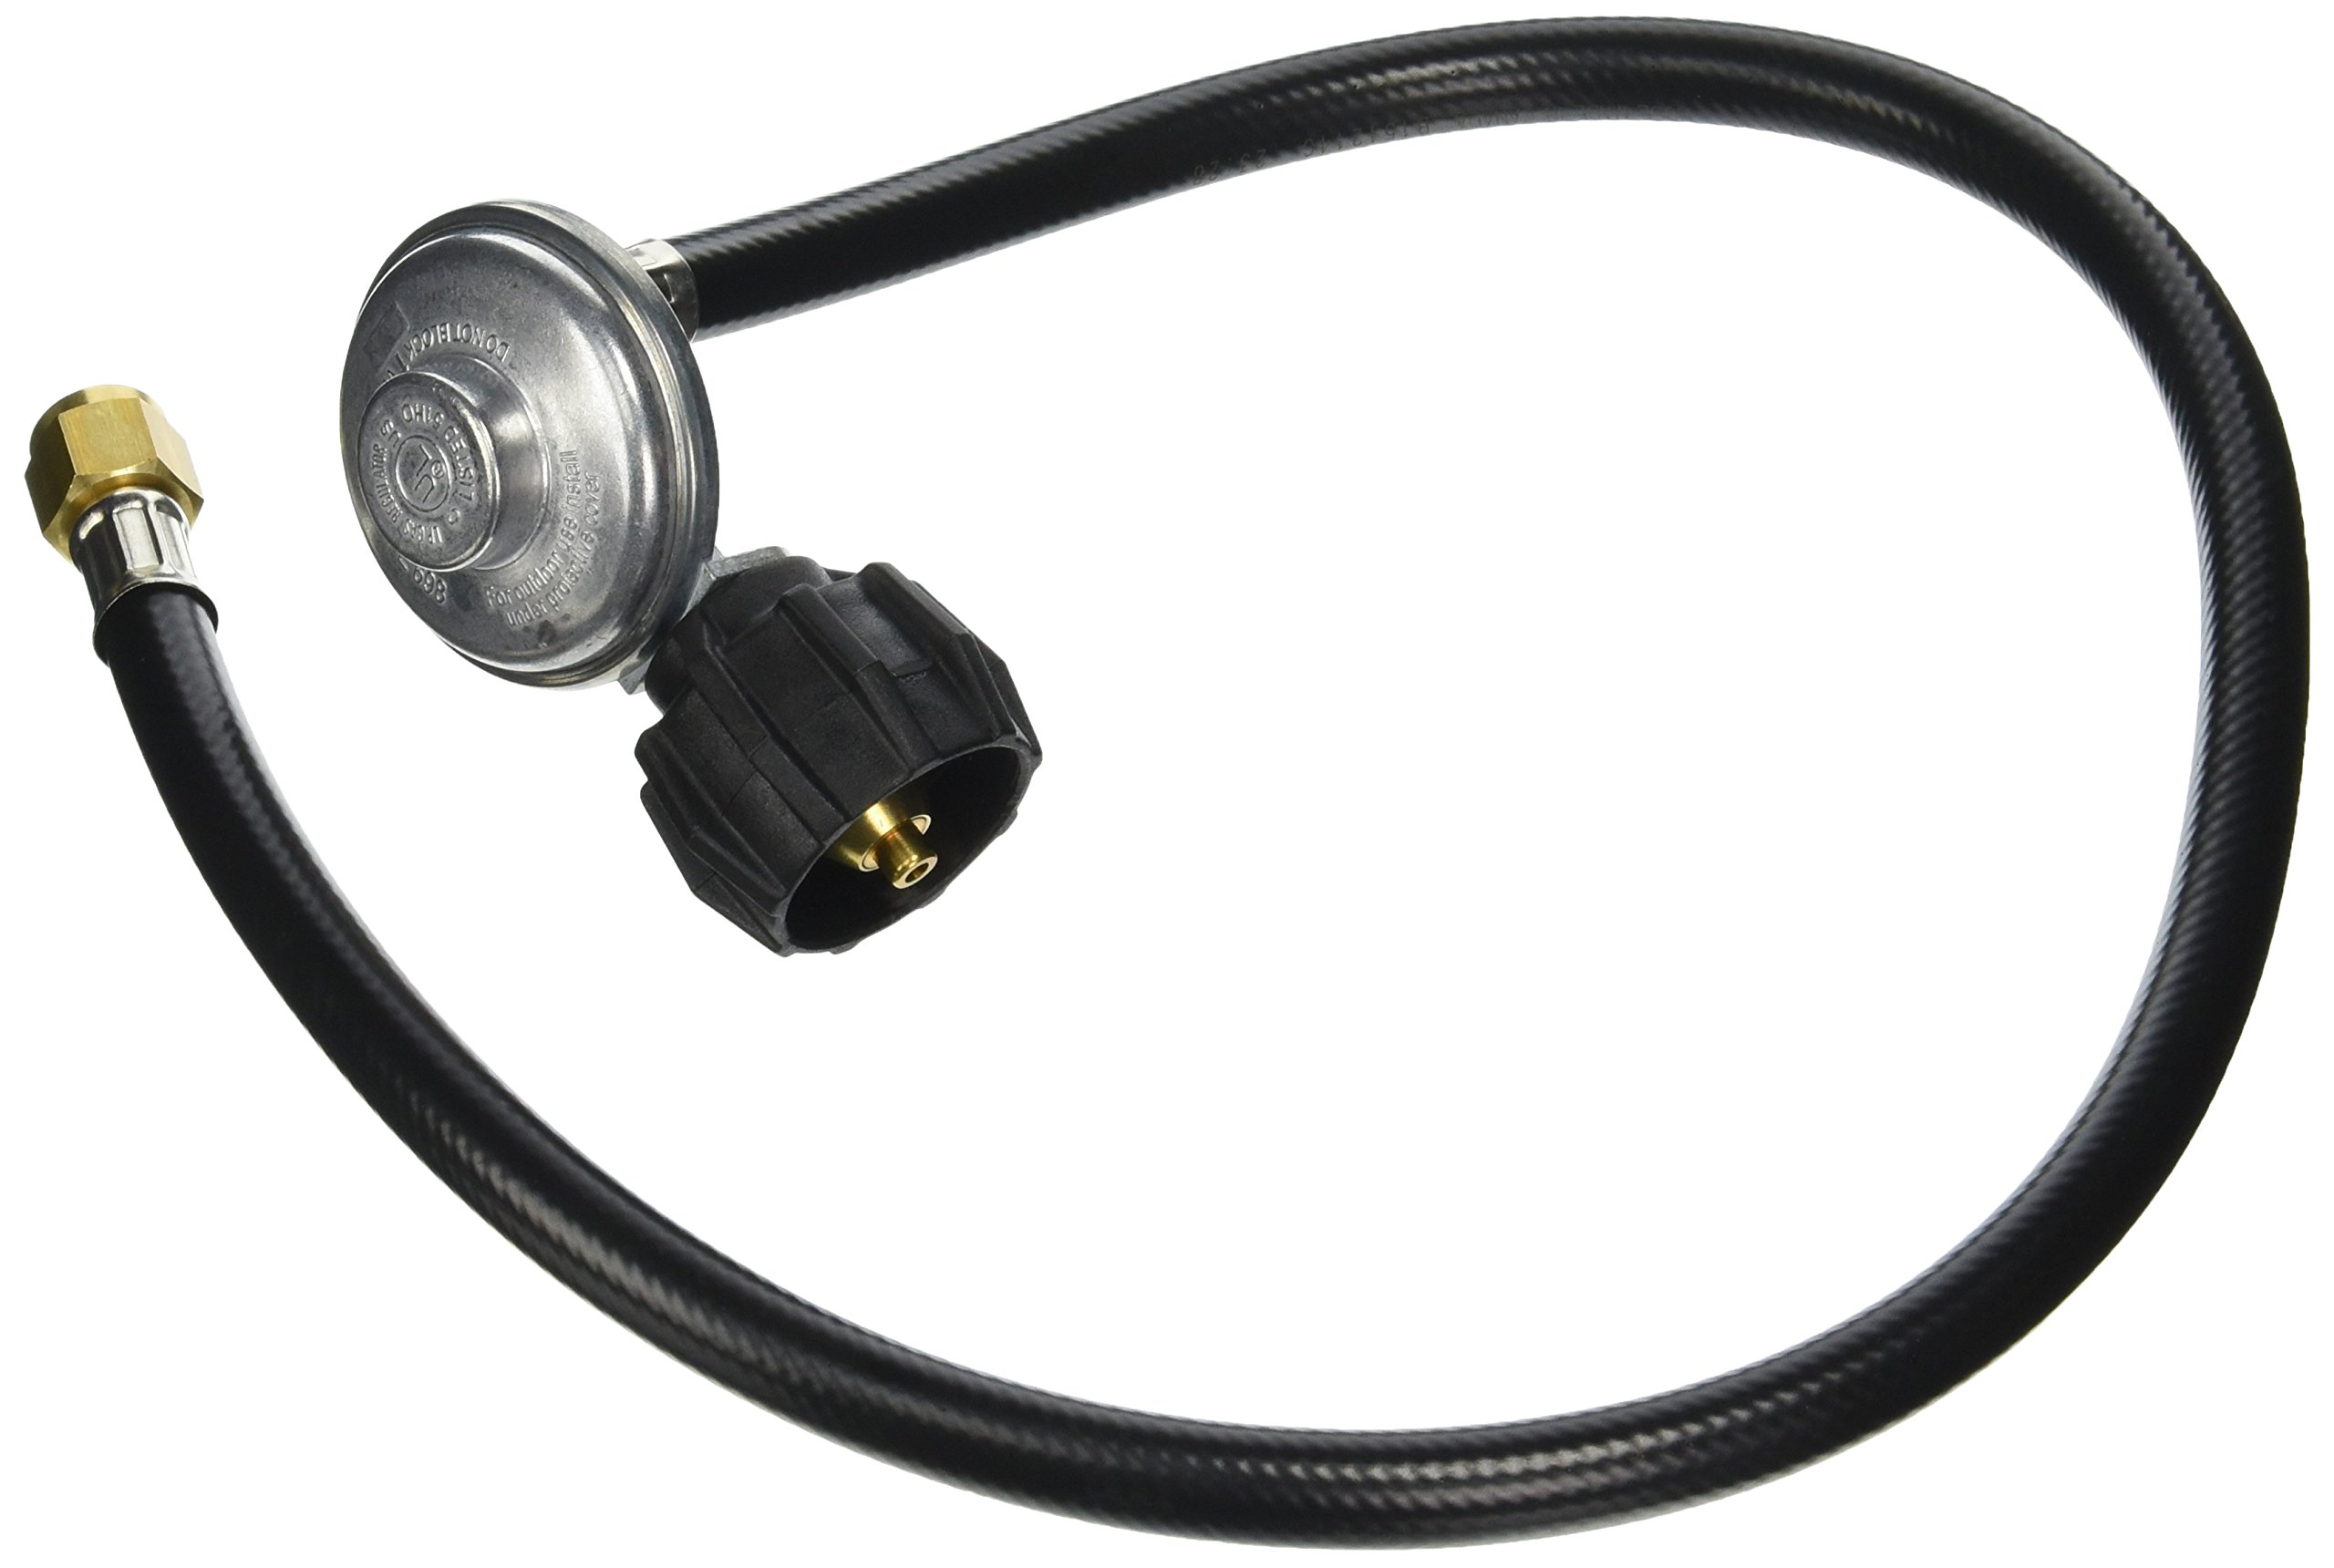 Weber 7627 QCC1 Hose and Regulator Kit for Genesis Gas Grill, 30-Inch by Weber